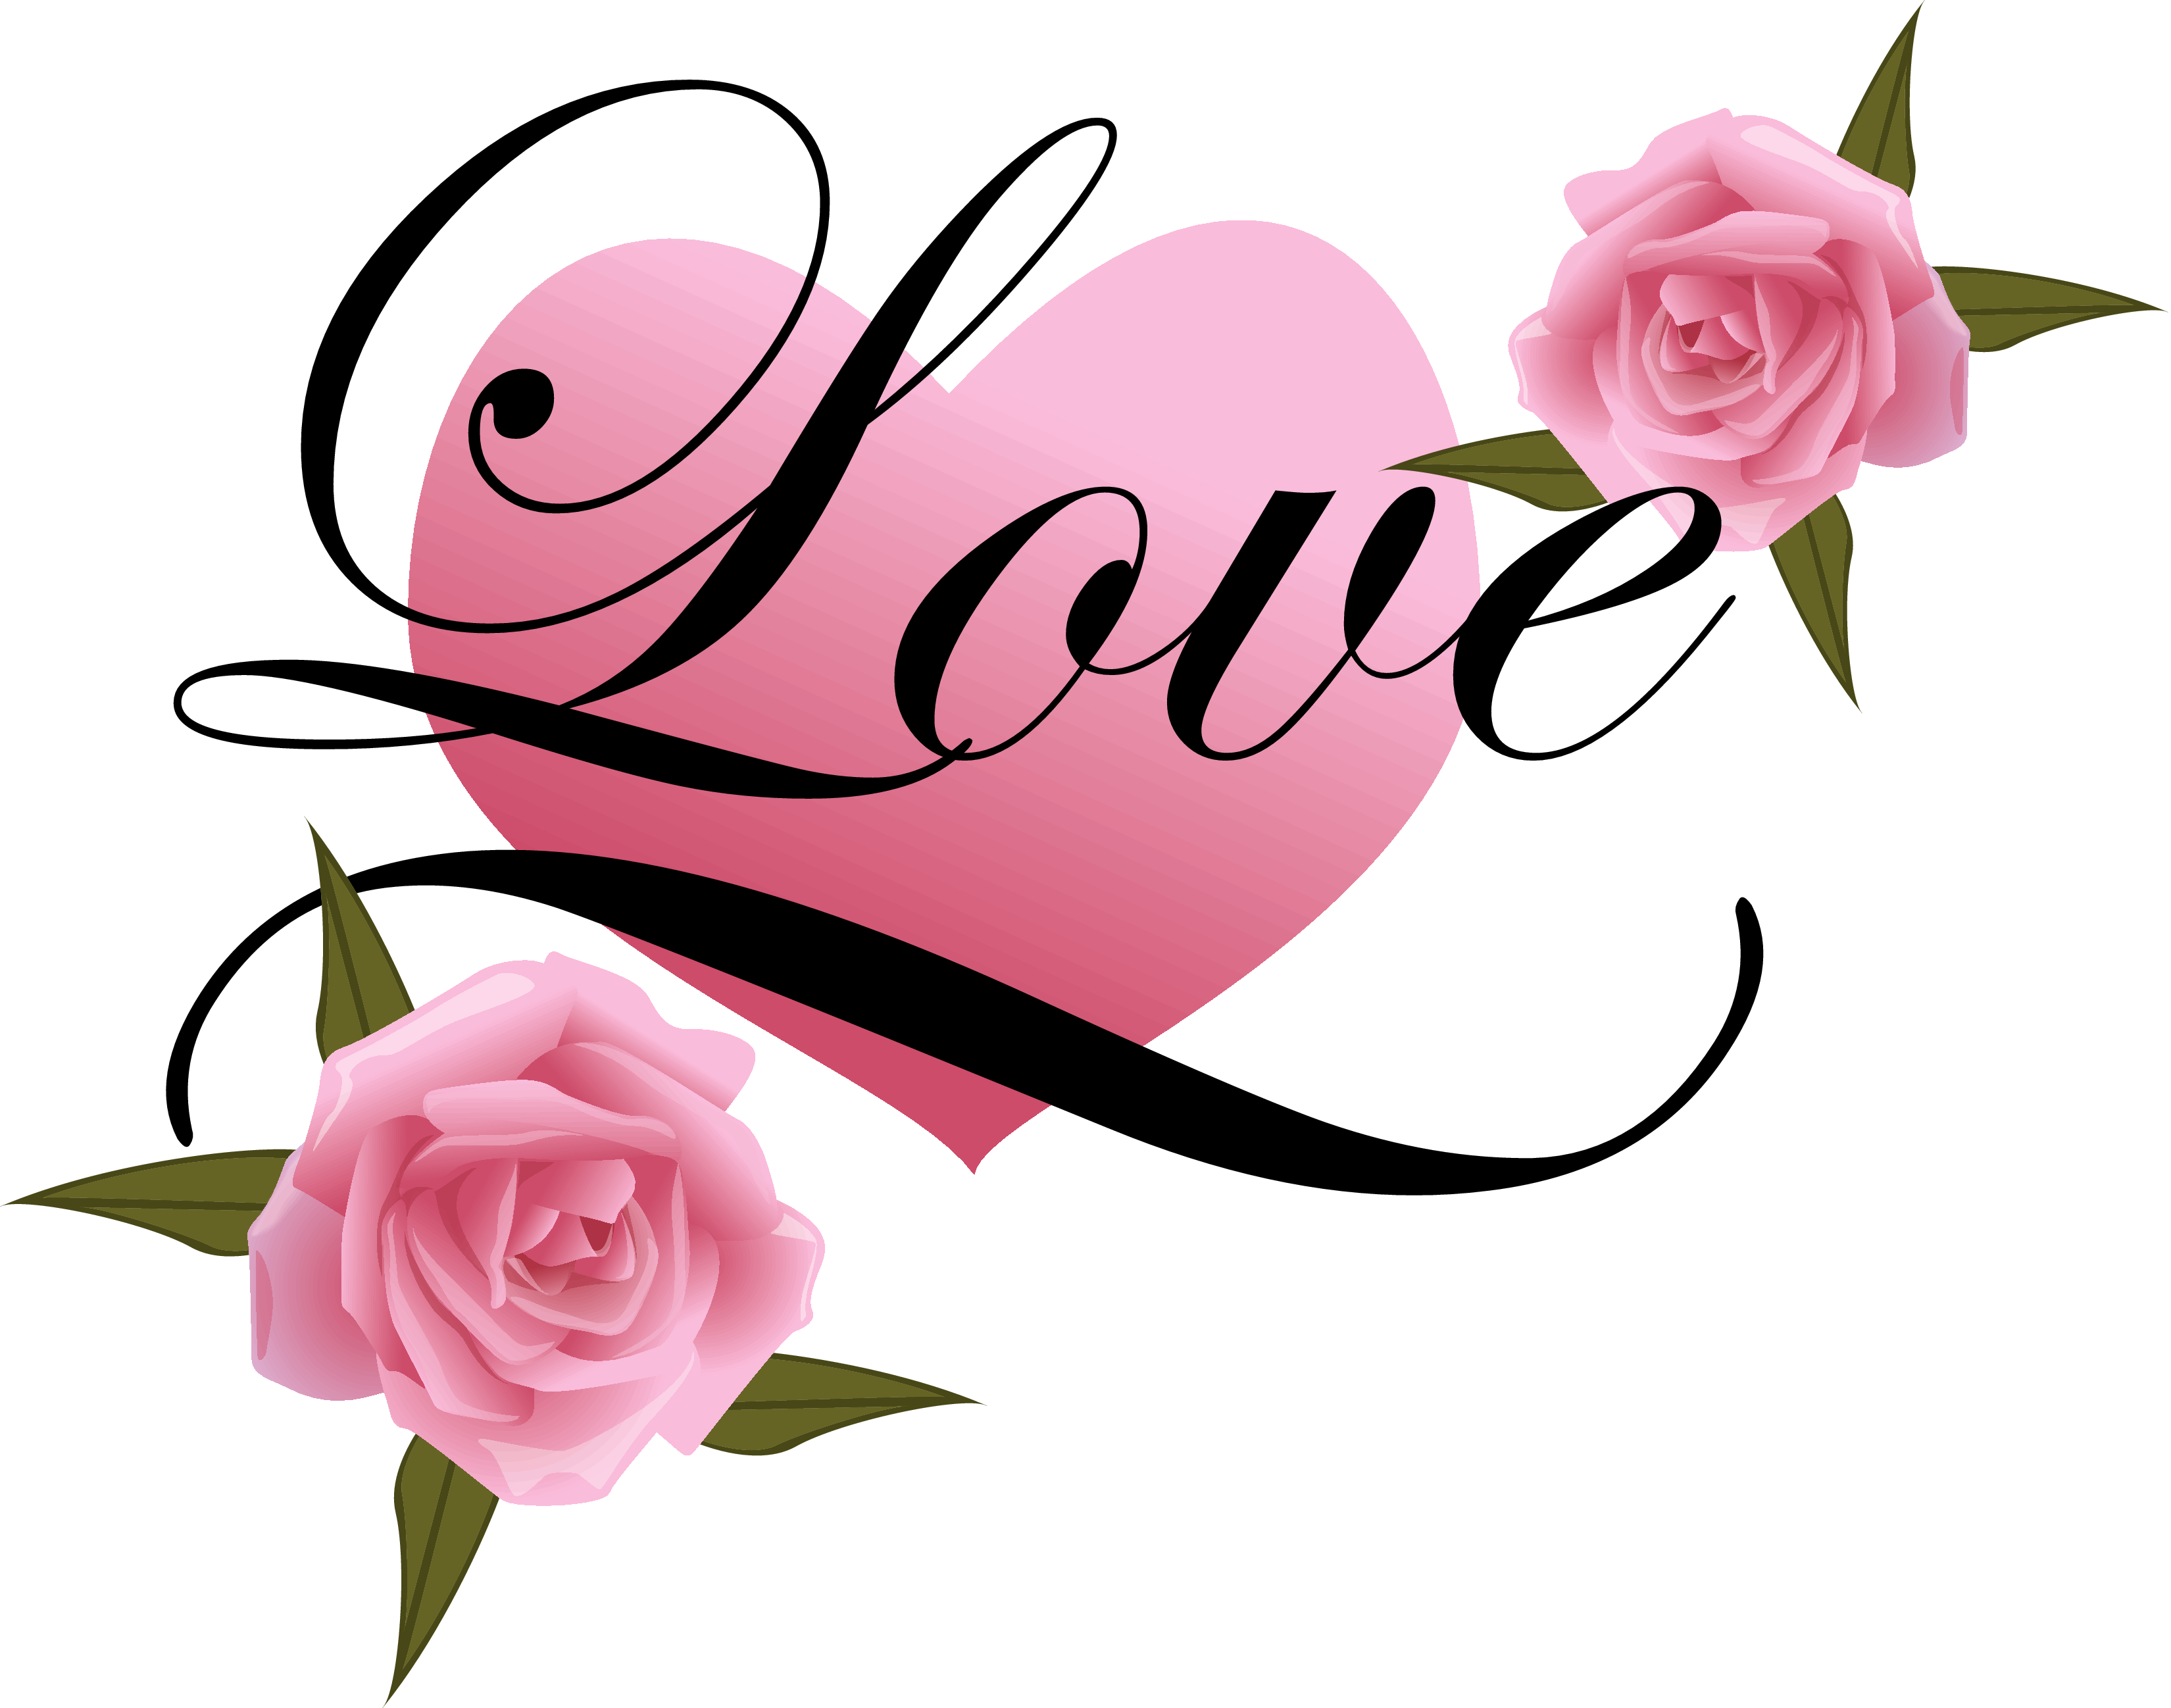 Engagement clipart wedding wishes. Image of love birds